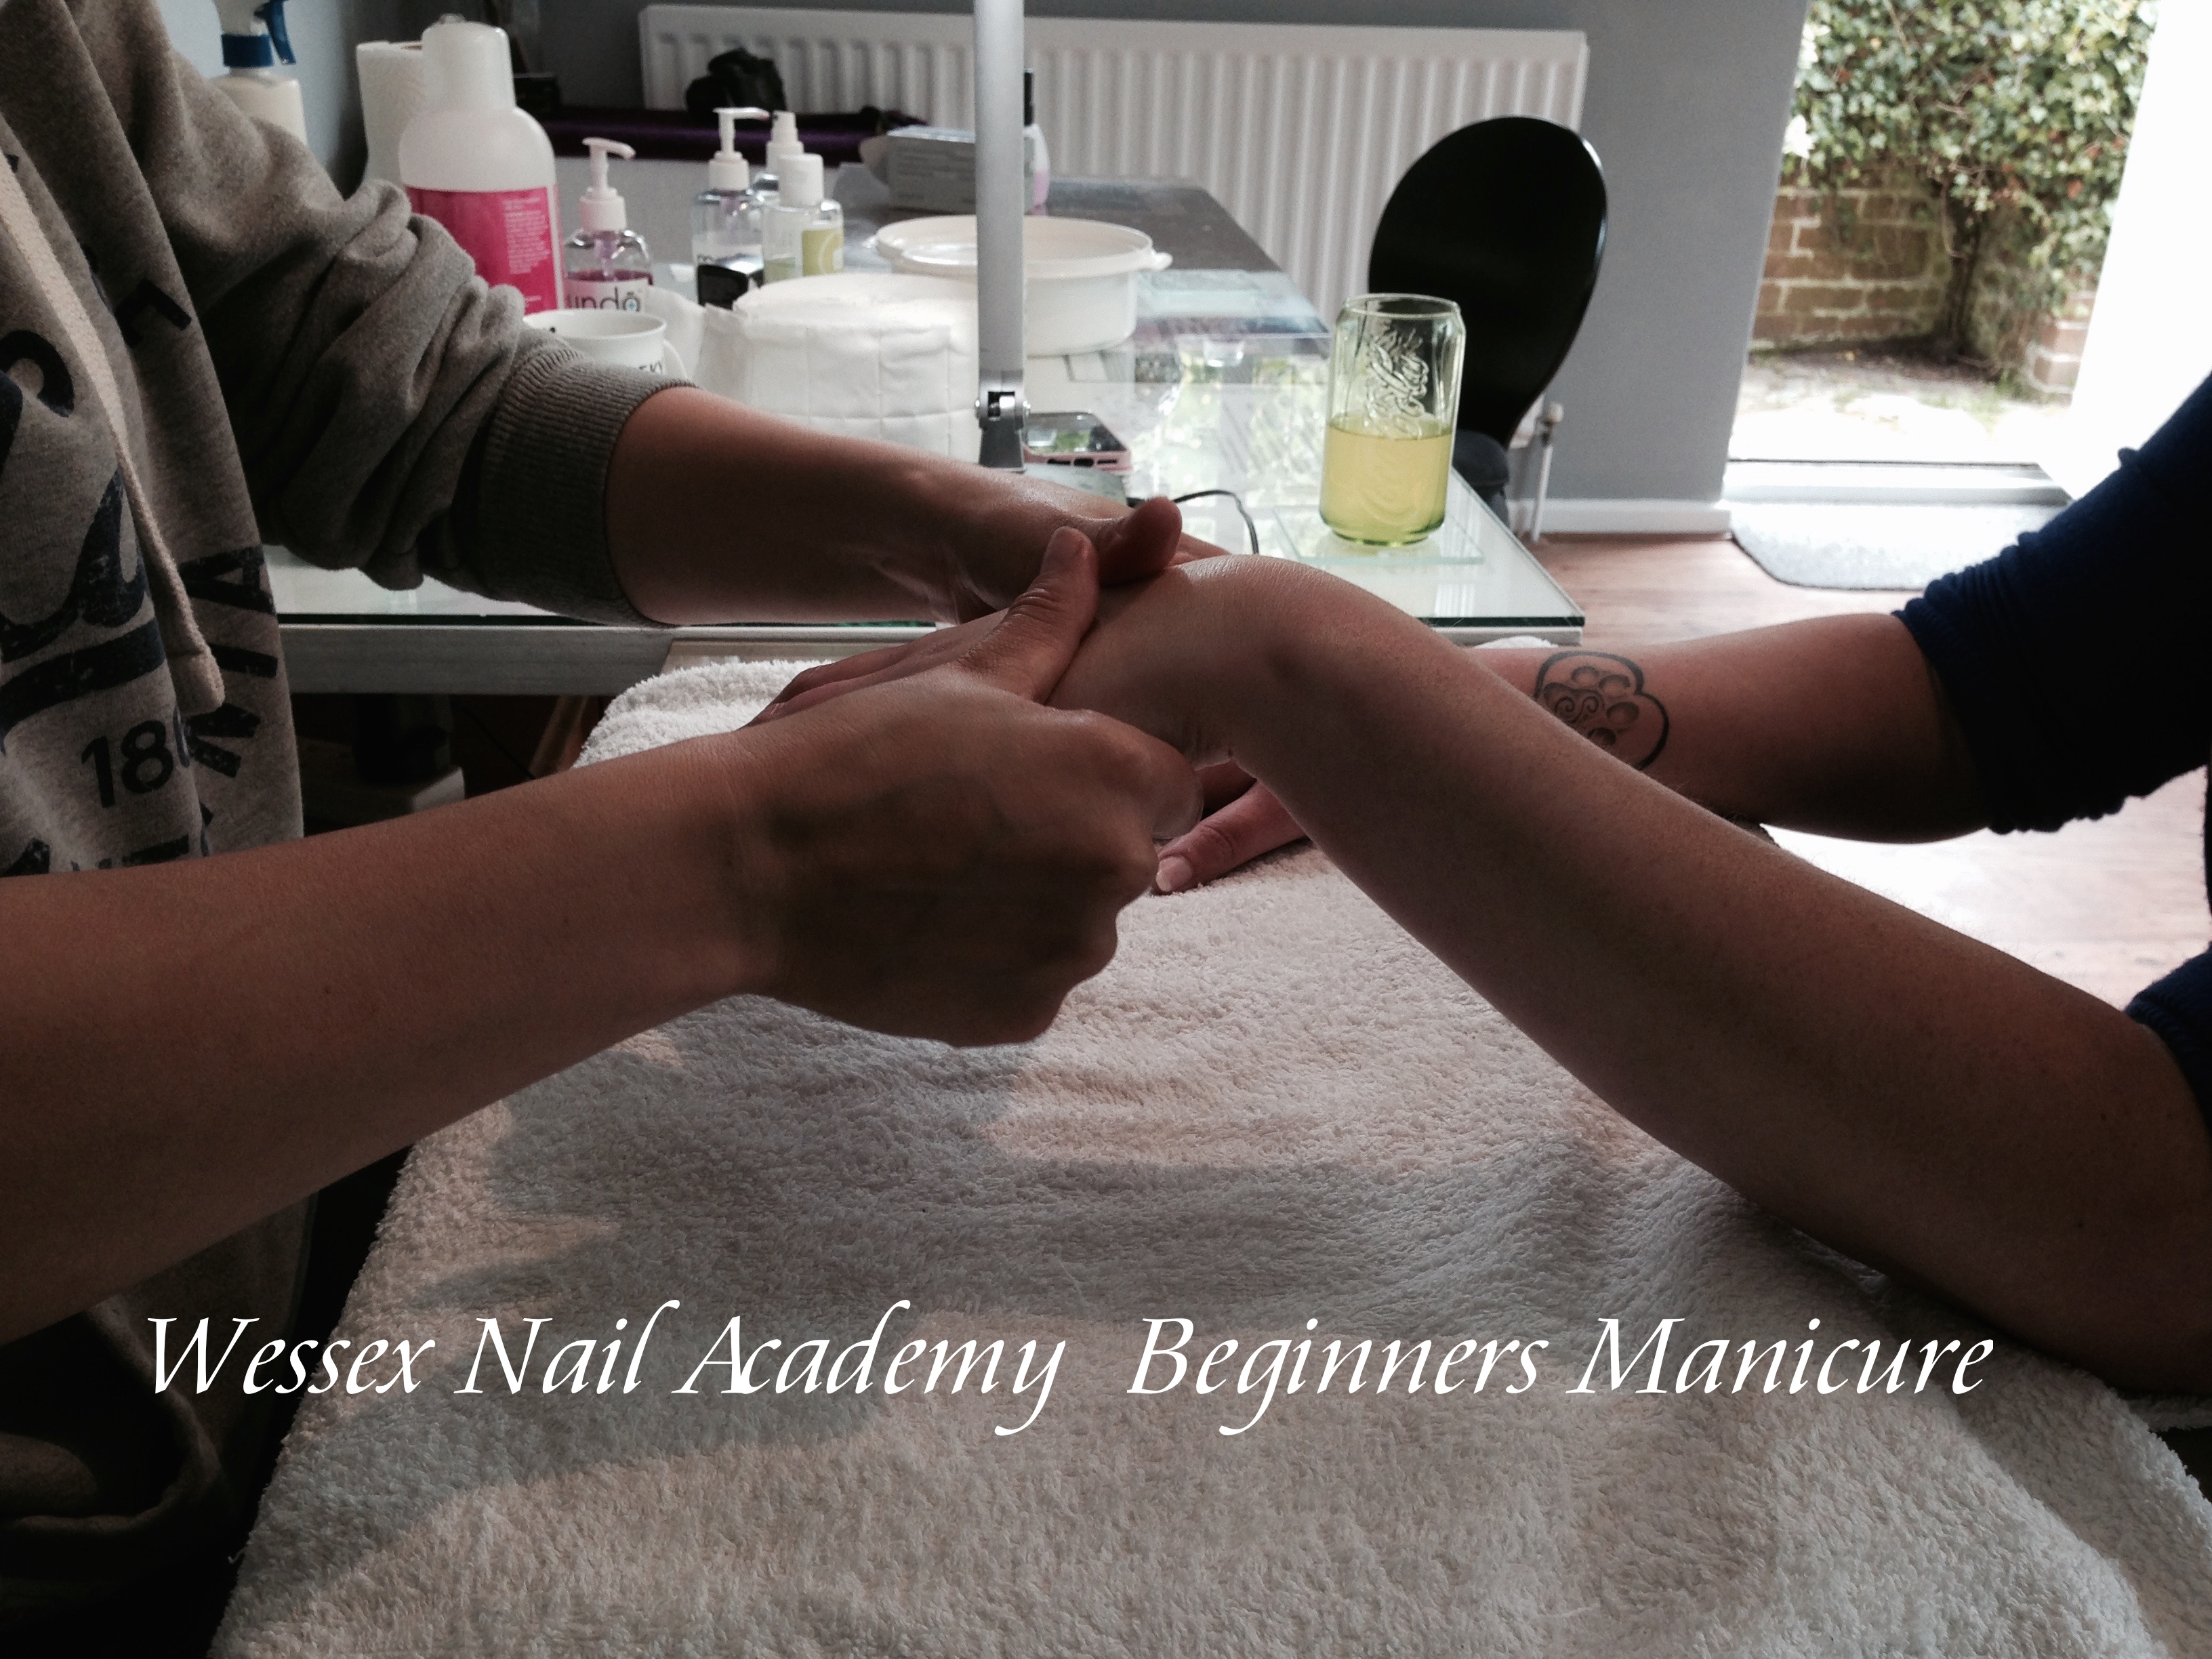 Beginners Manicure Training Course, Nail extension training, nail training course, Wessex Nail Academy Okeford Fitzpaine, Dorset